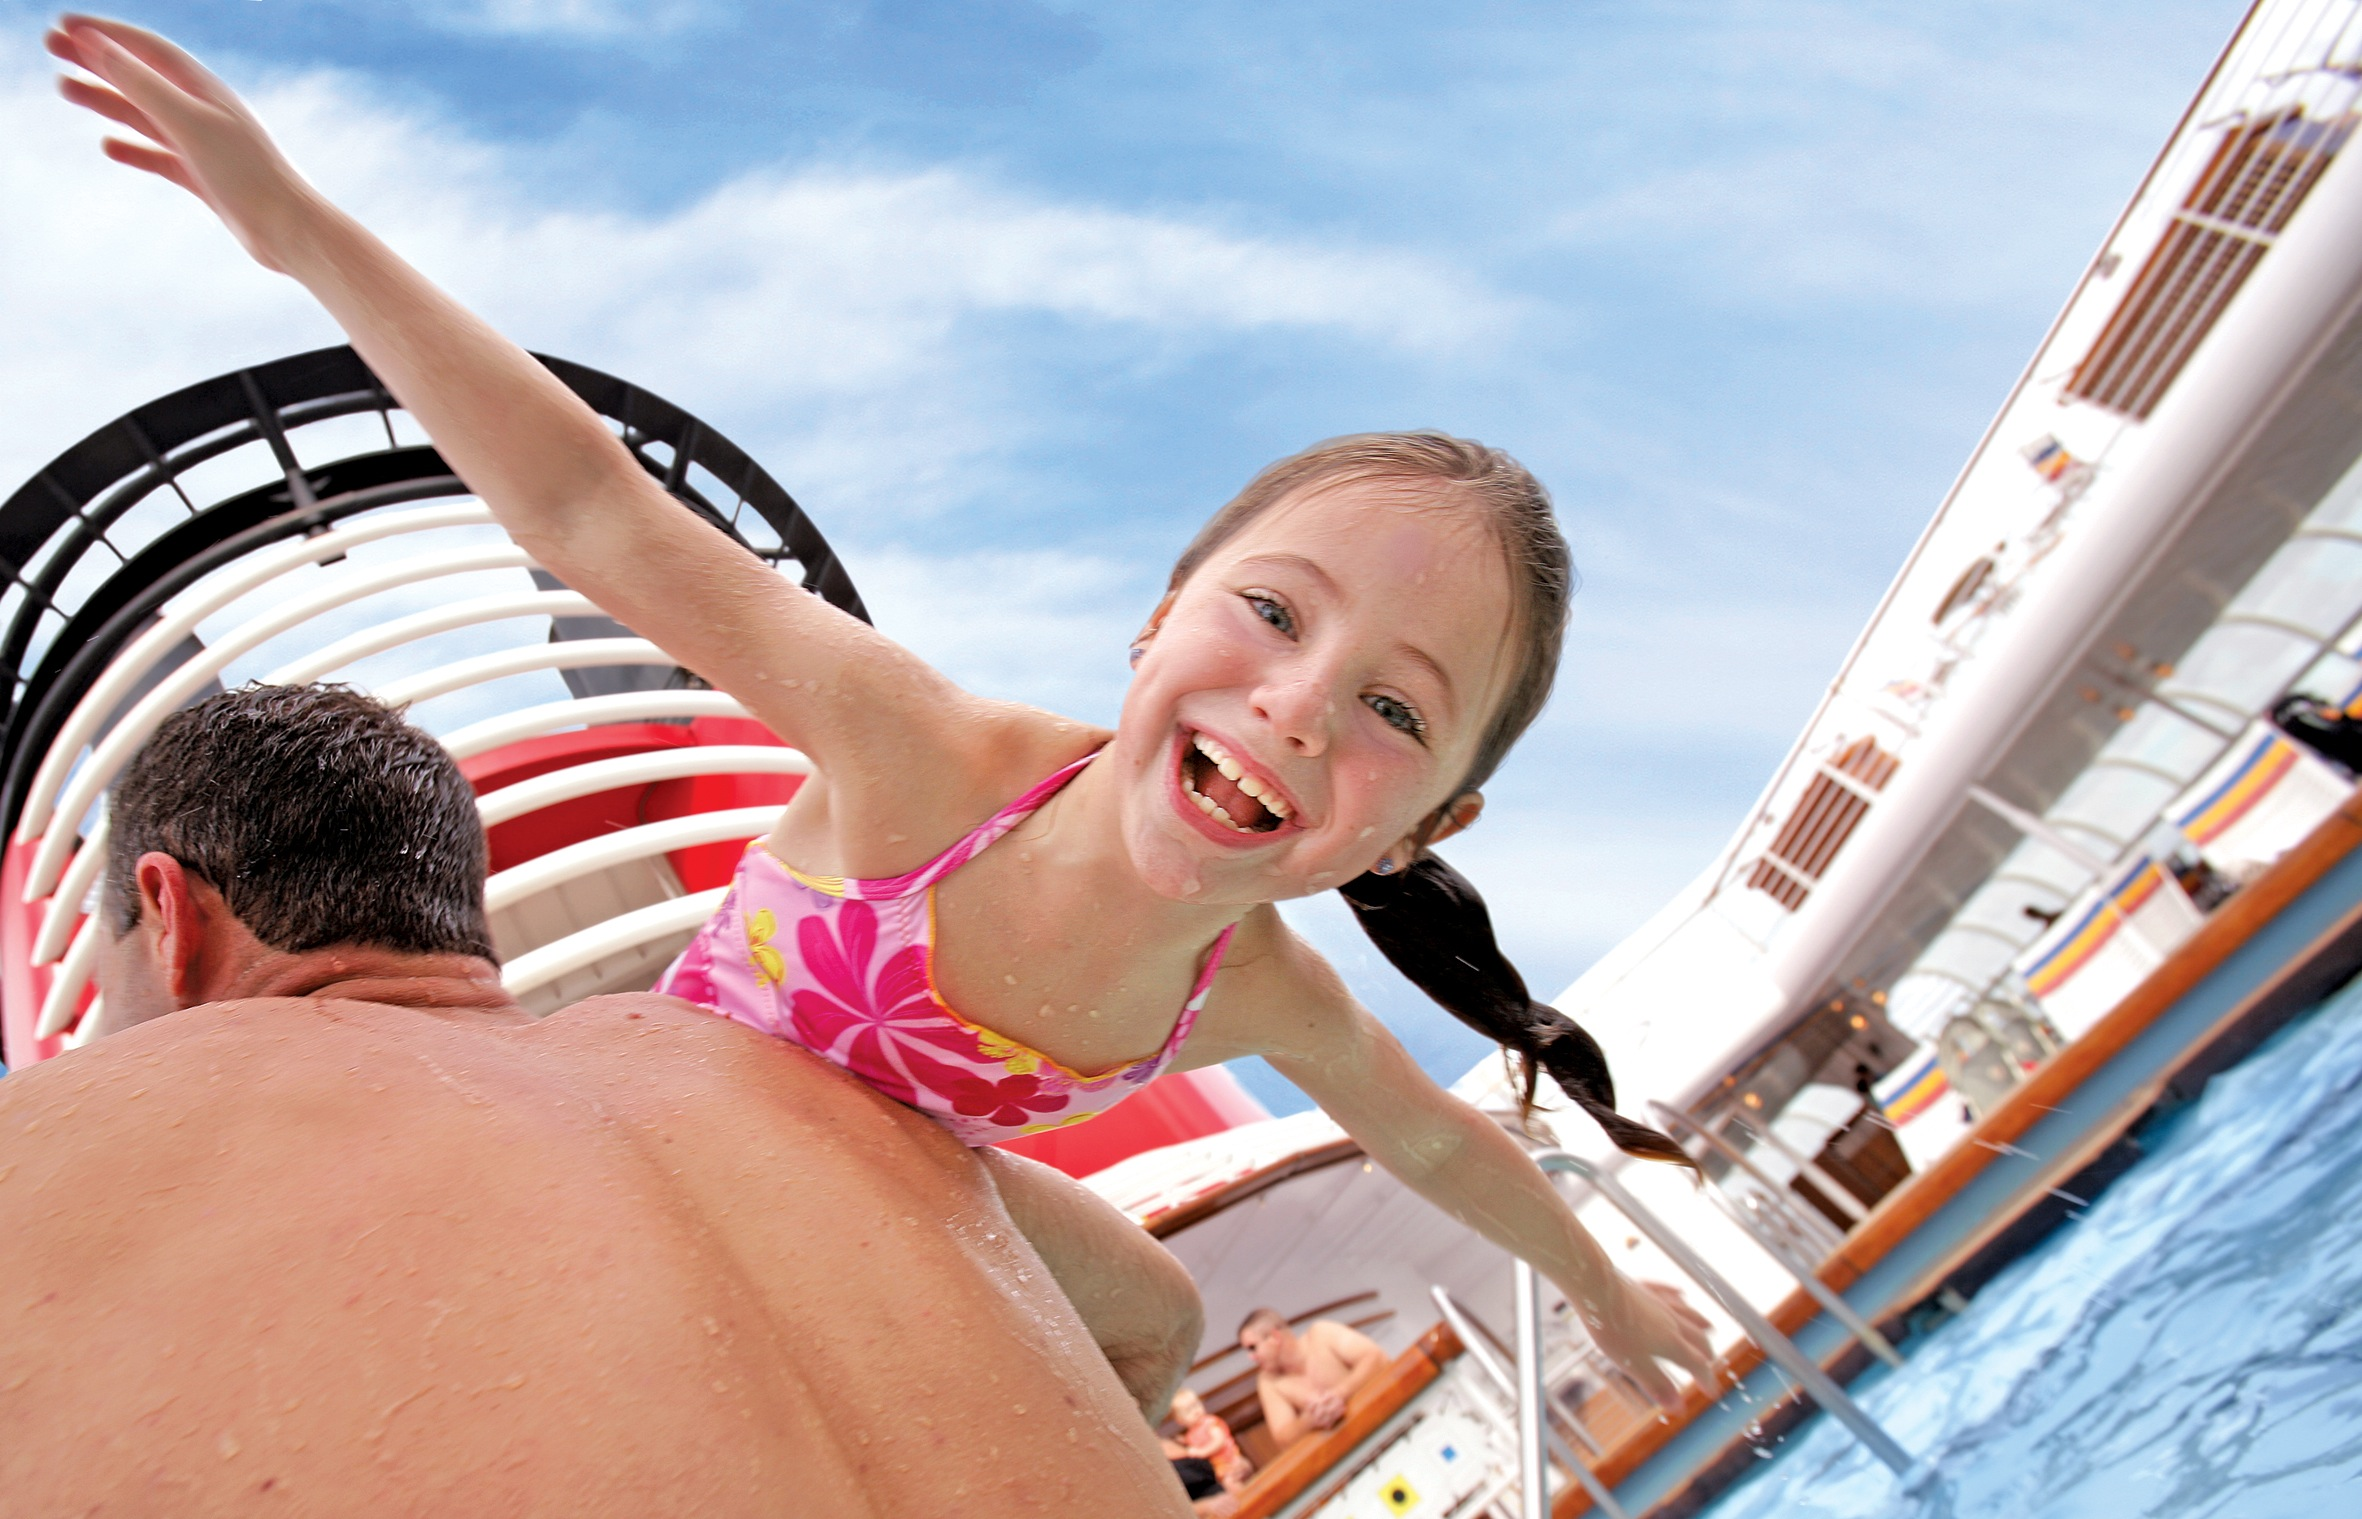 Disney Cruise Line Exterior Young guest at the pool.jpg